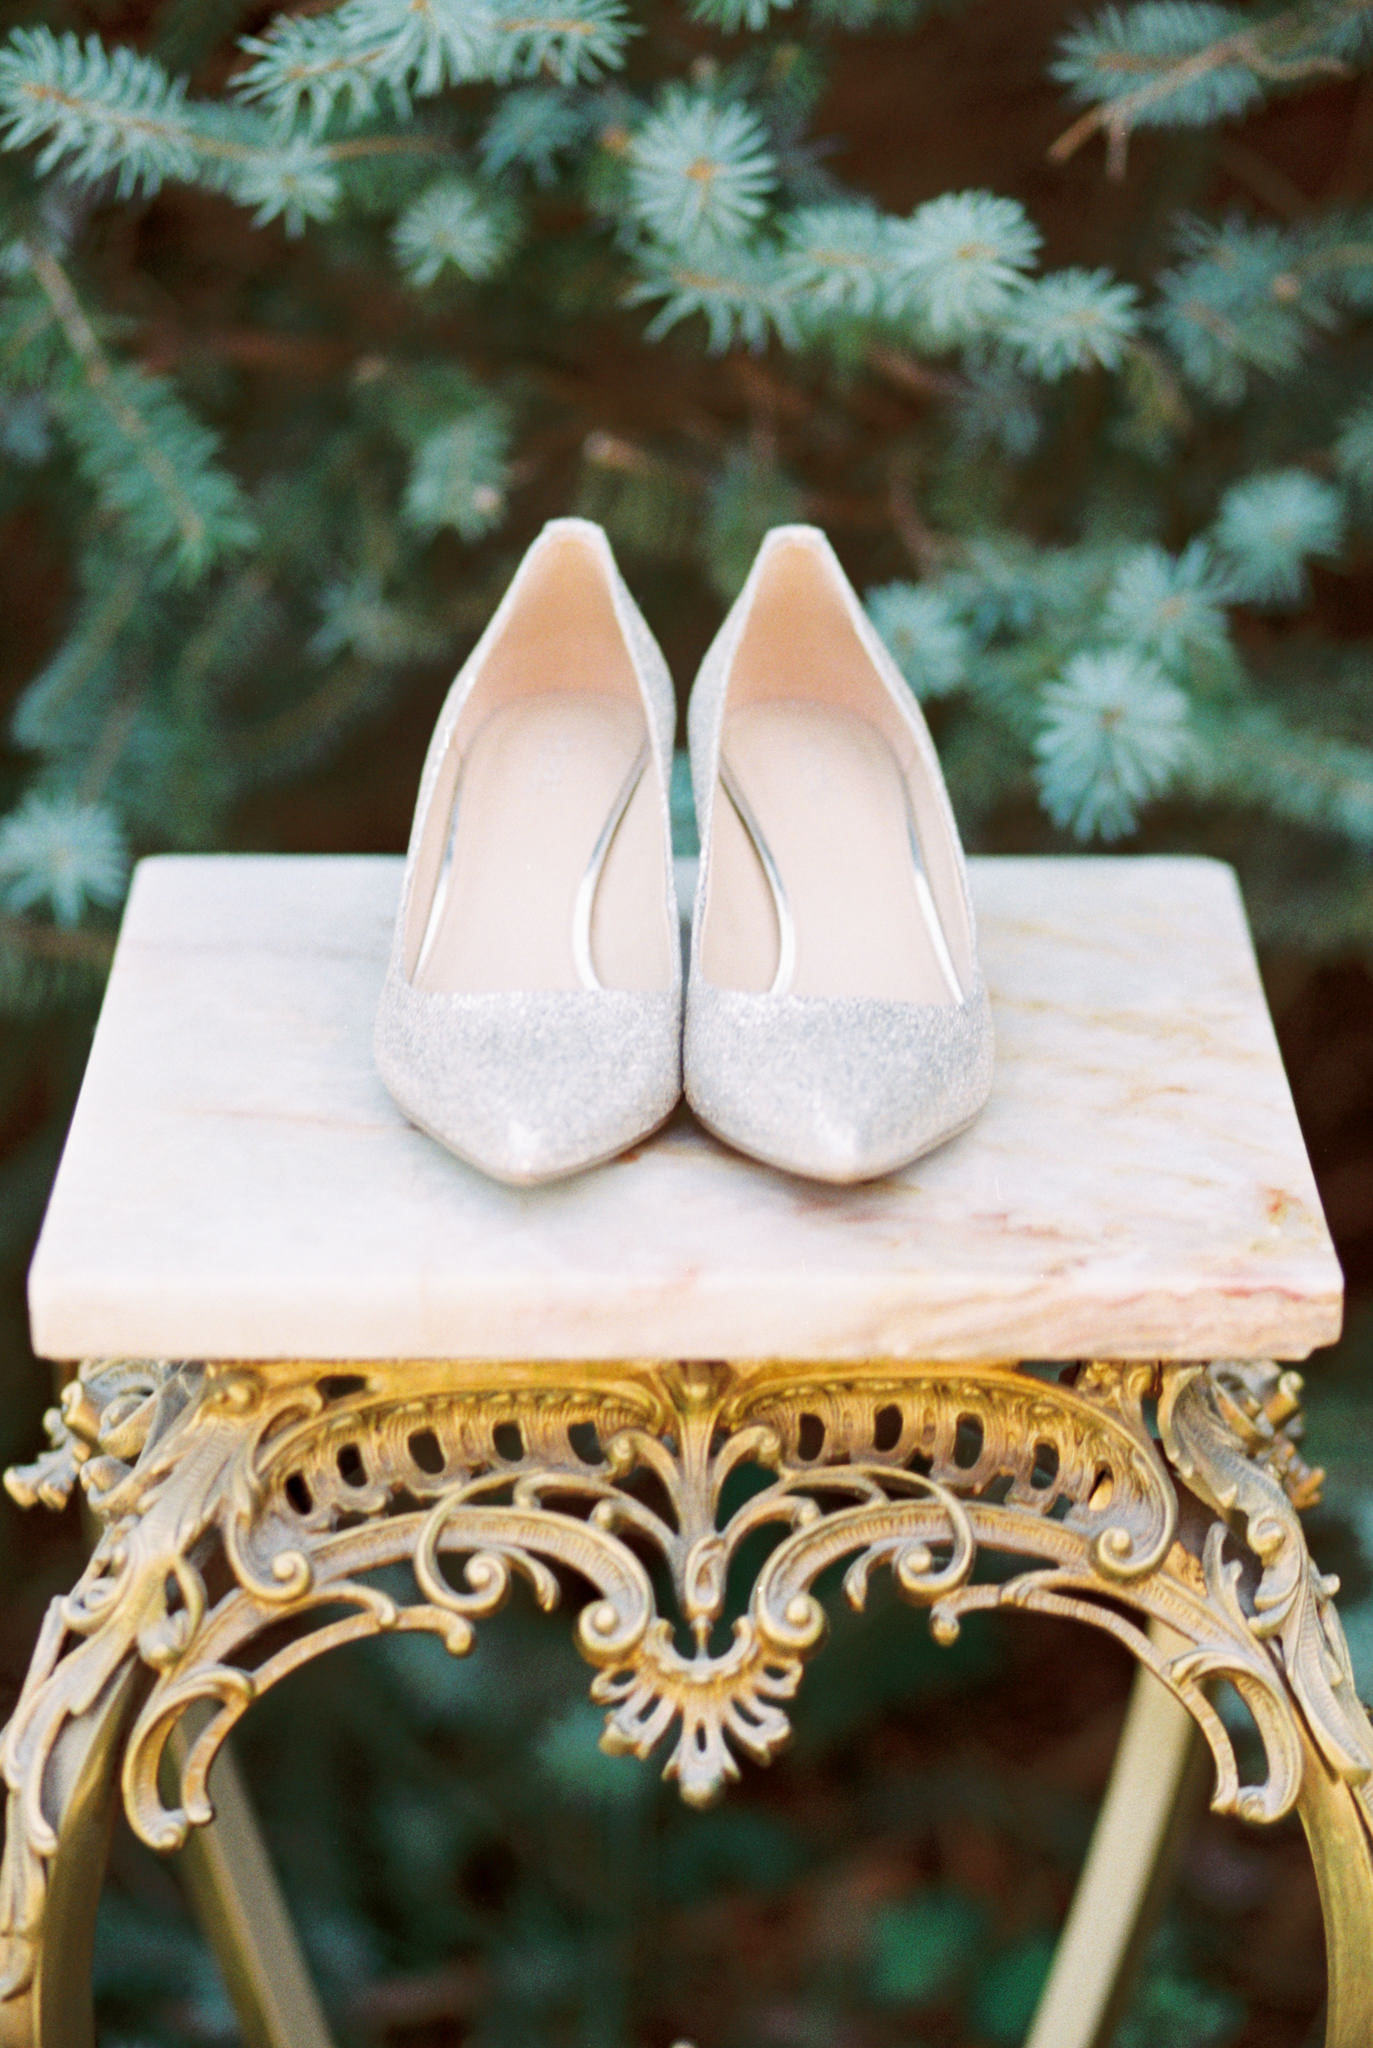 Michael Kors glitter wedding shoes sitting on marble and gold table